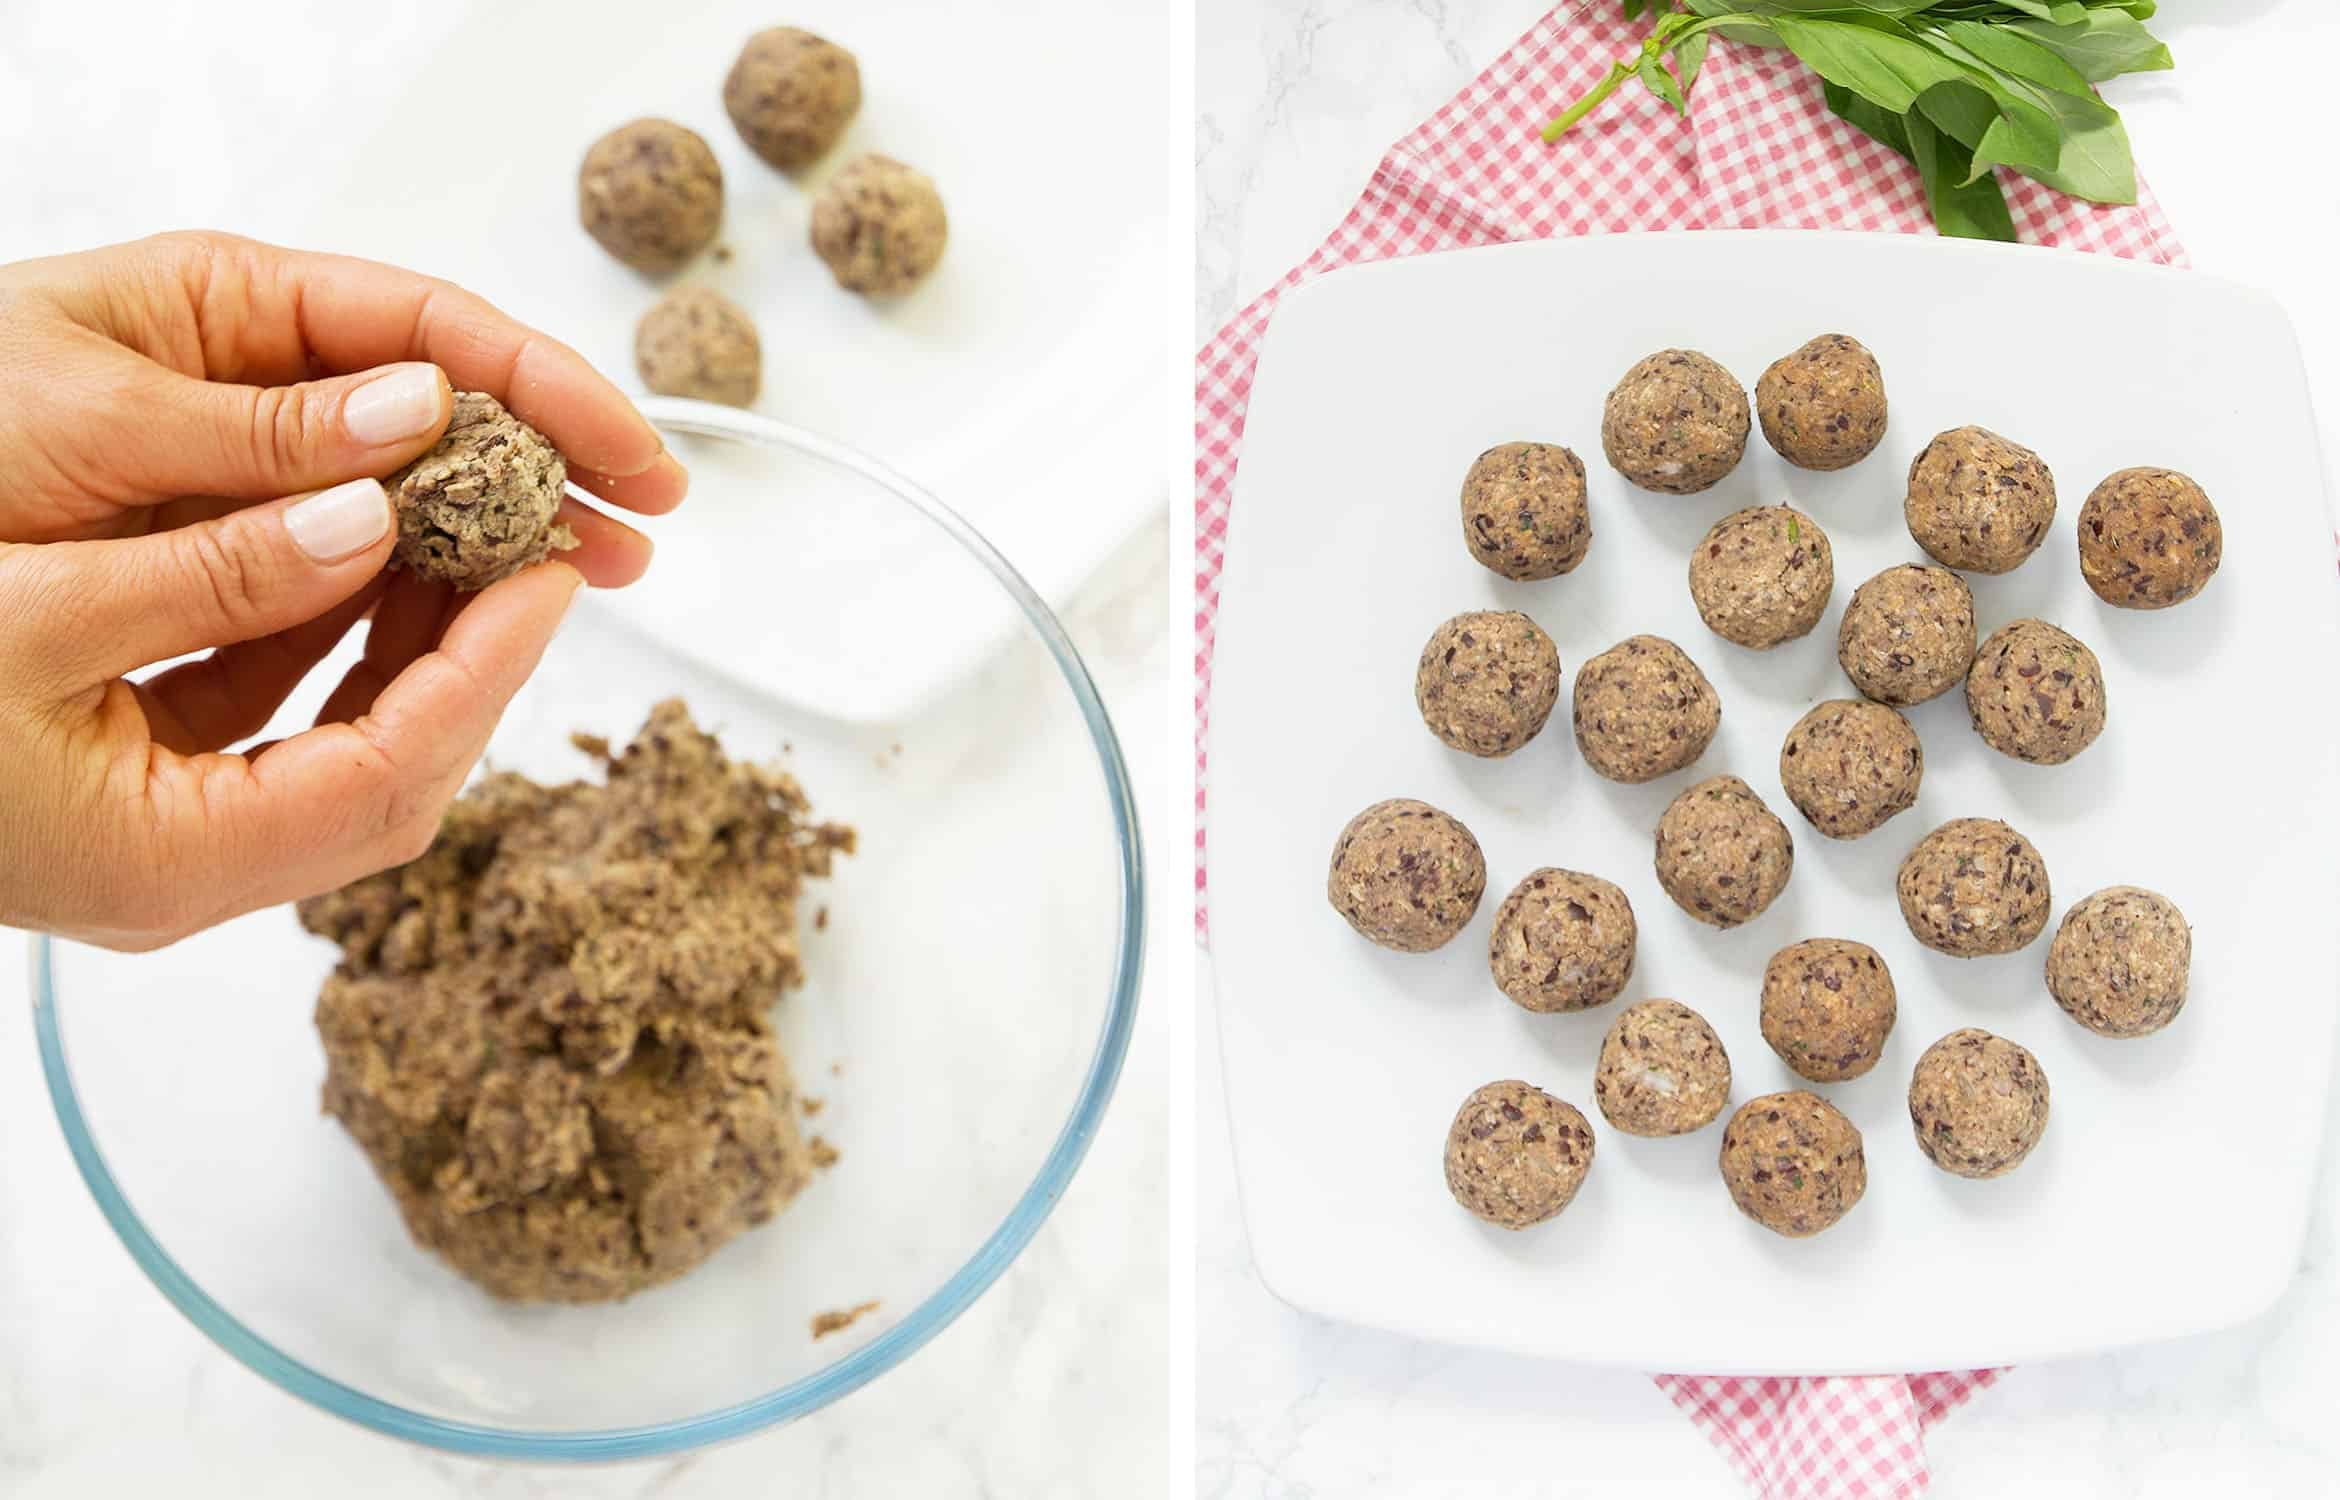 For about 18-20 little vegan meatballs